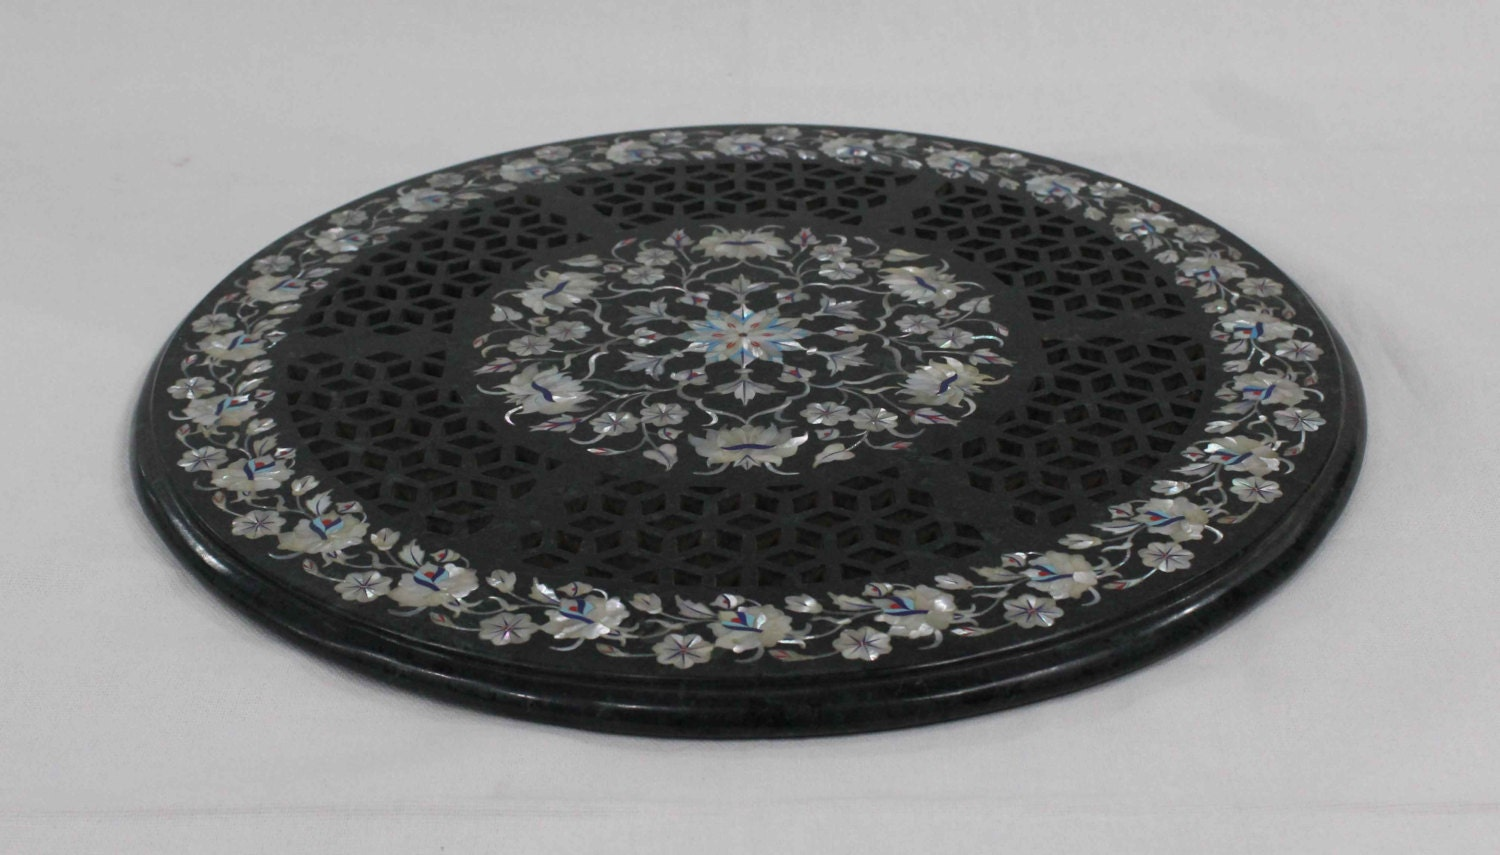 Marble Inlay Table Tops : Marble inlay coffee table top inlaid with semiprecious